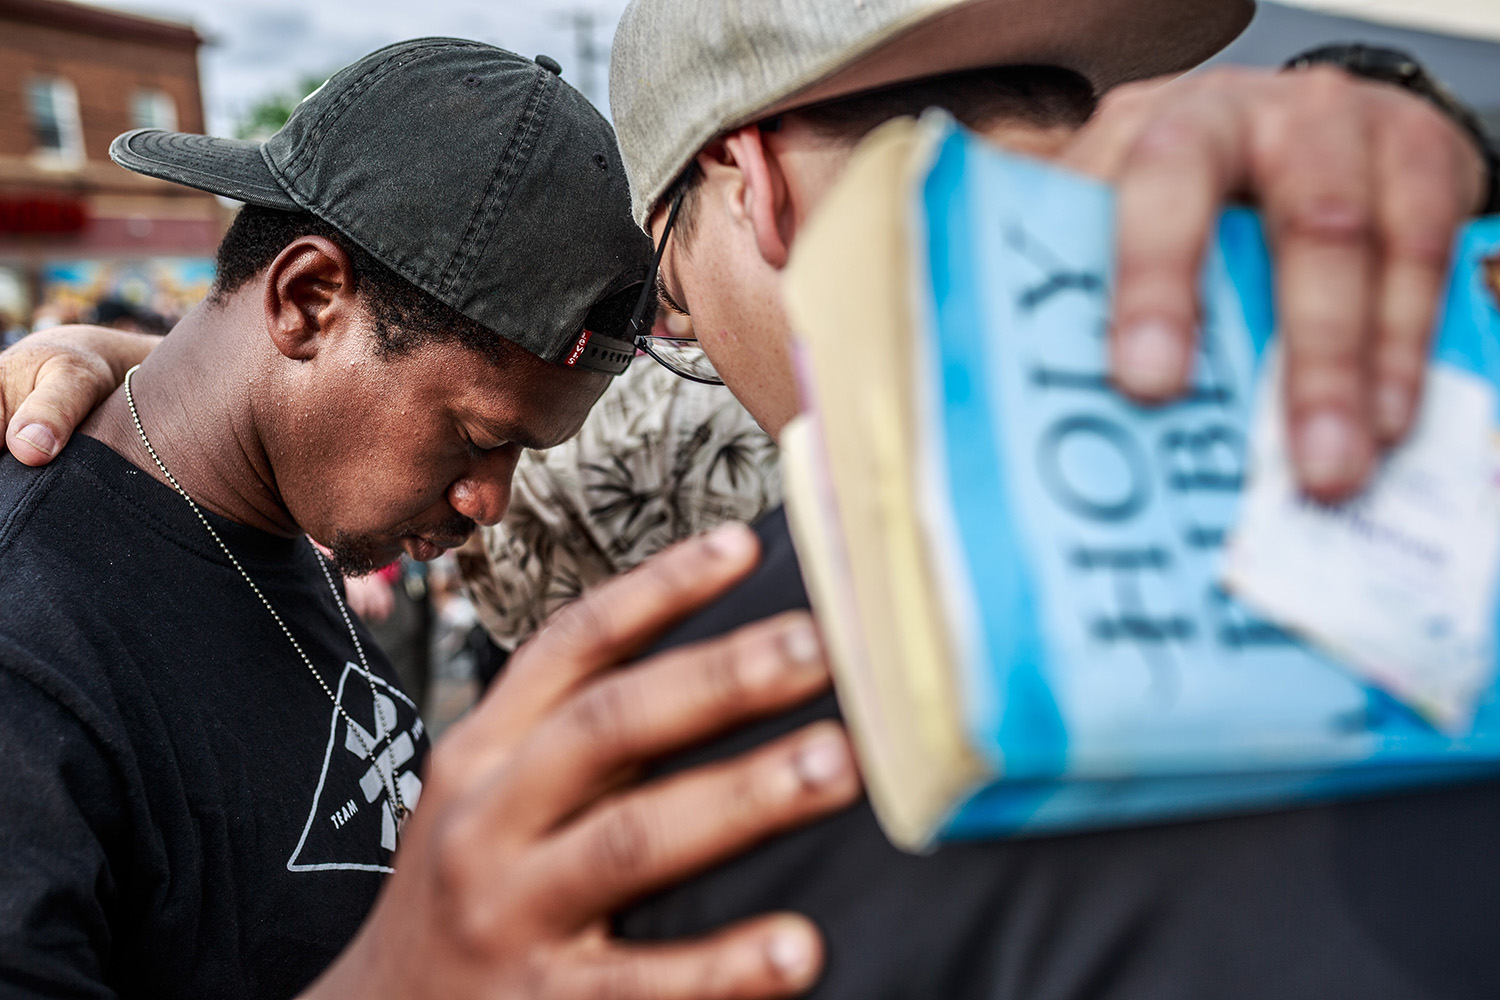 Men pray during a Juneteenth ceremony near the site where George Floyd died in police custody in Minneapolis, Minnesota, on June 19. KEREM YUCEL/AFP via Getty Images